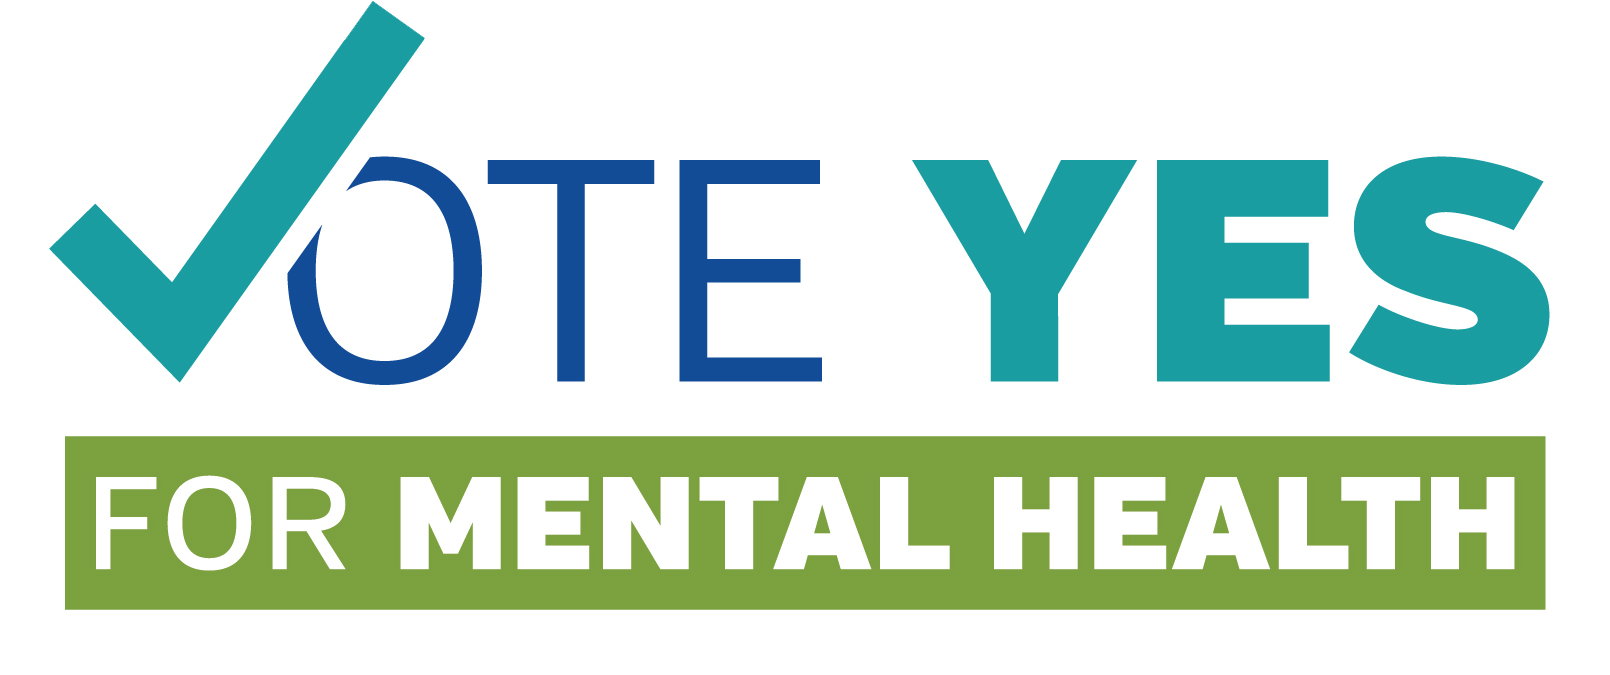 Lakeshore Lions Club Bimonthly Meeting Vote Yes For Mental Health